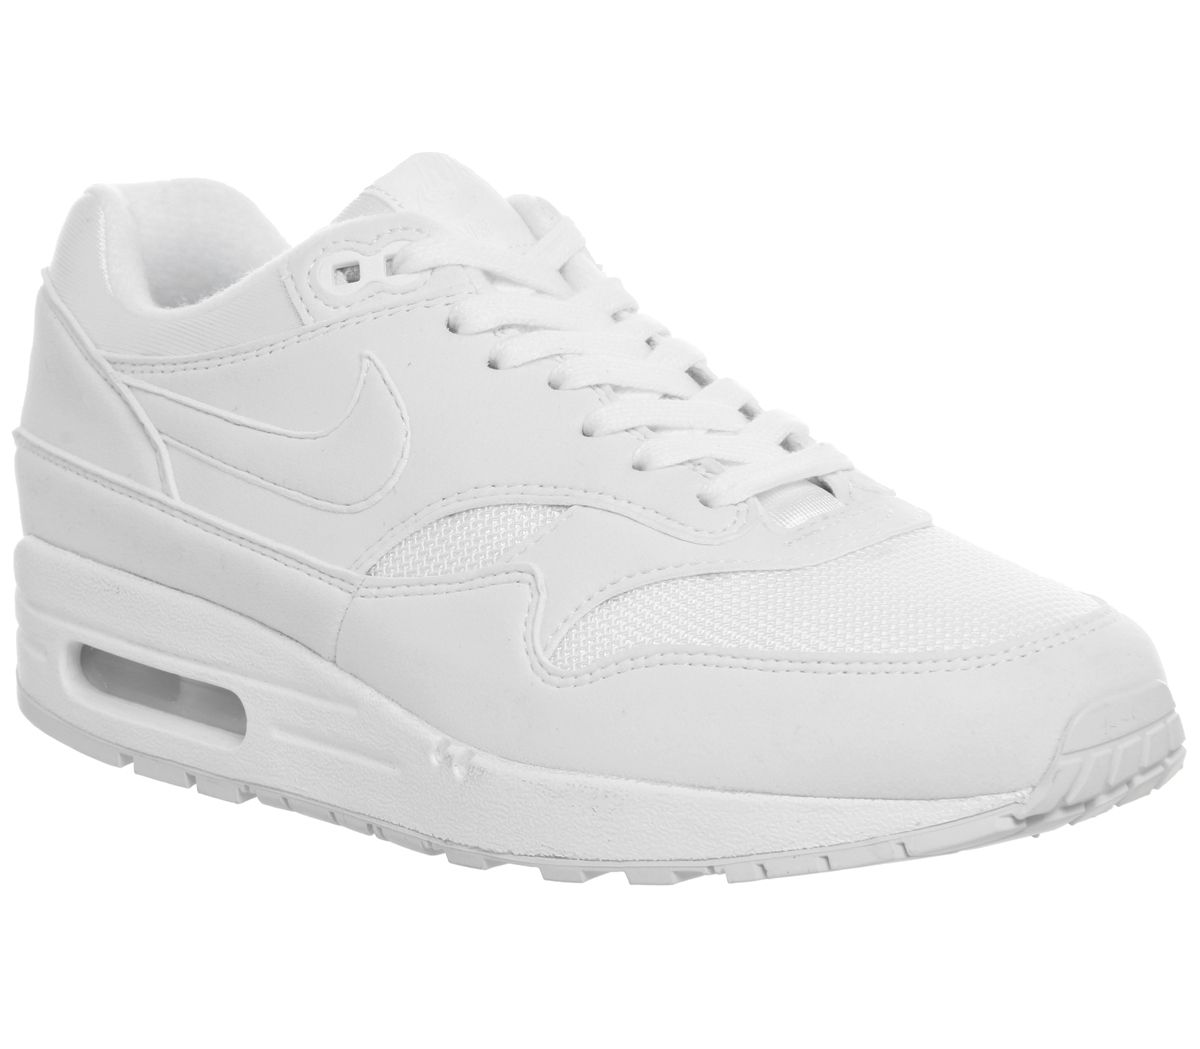 low priced 18191 4ac5c Nike Air Max 1 Trainers White White Pure Platinum F - Hers trainers